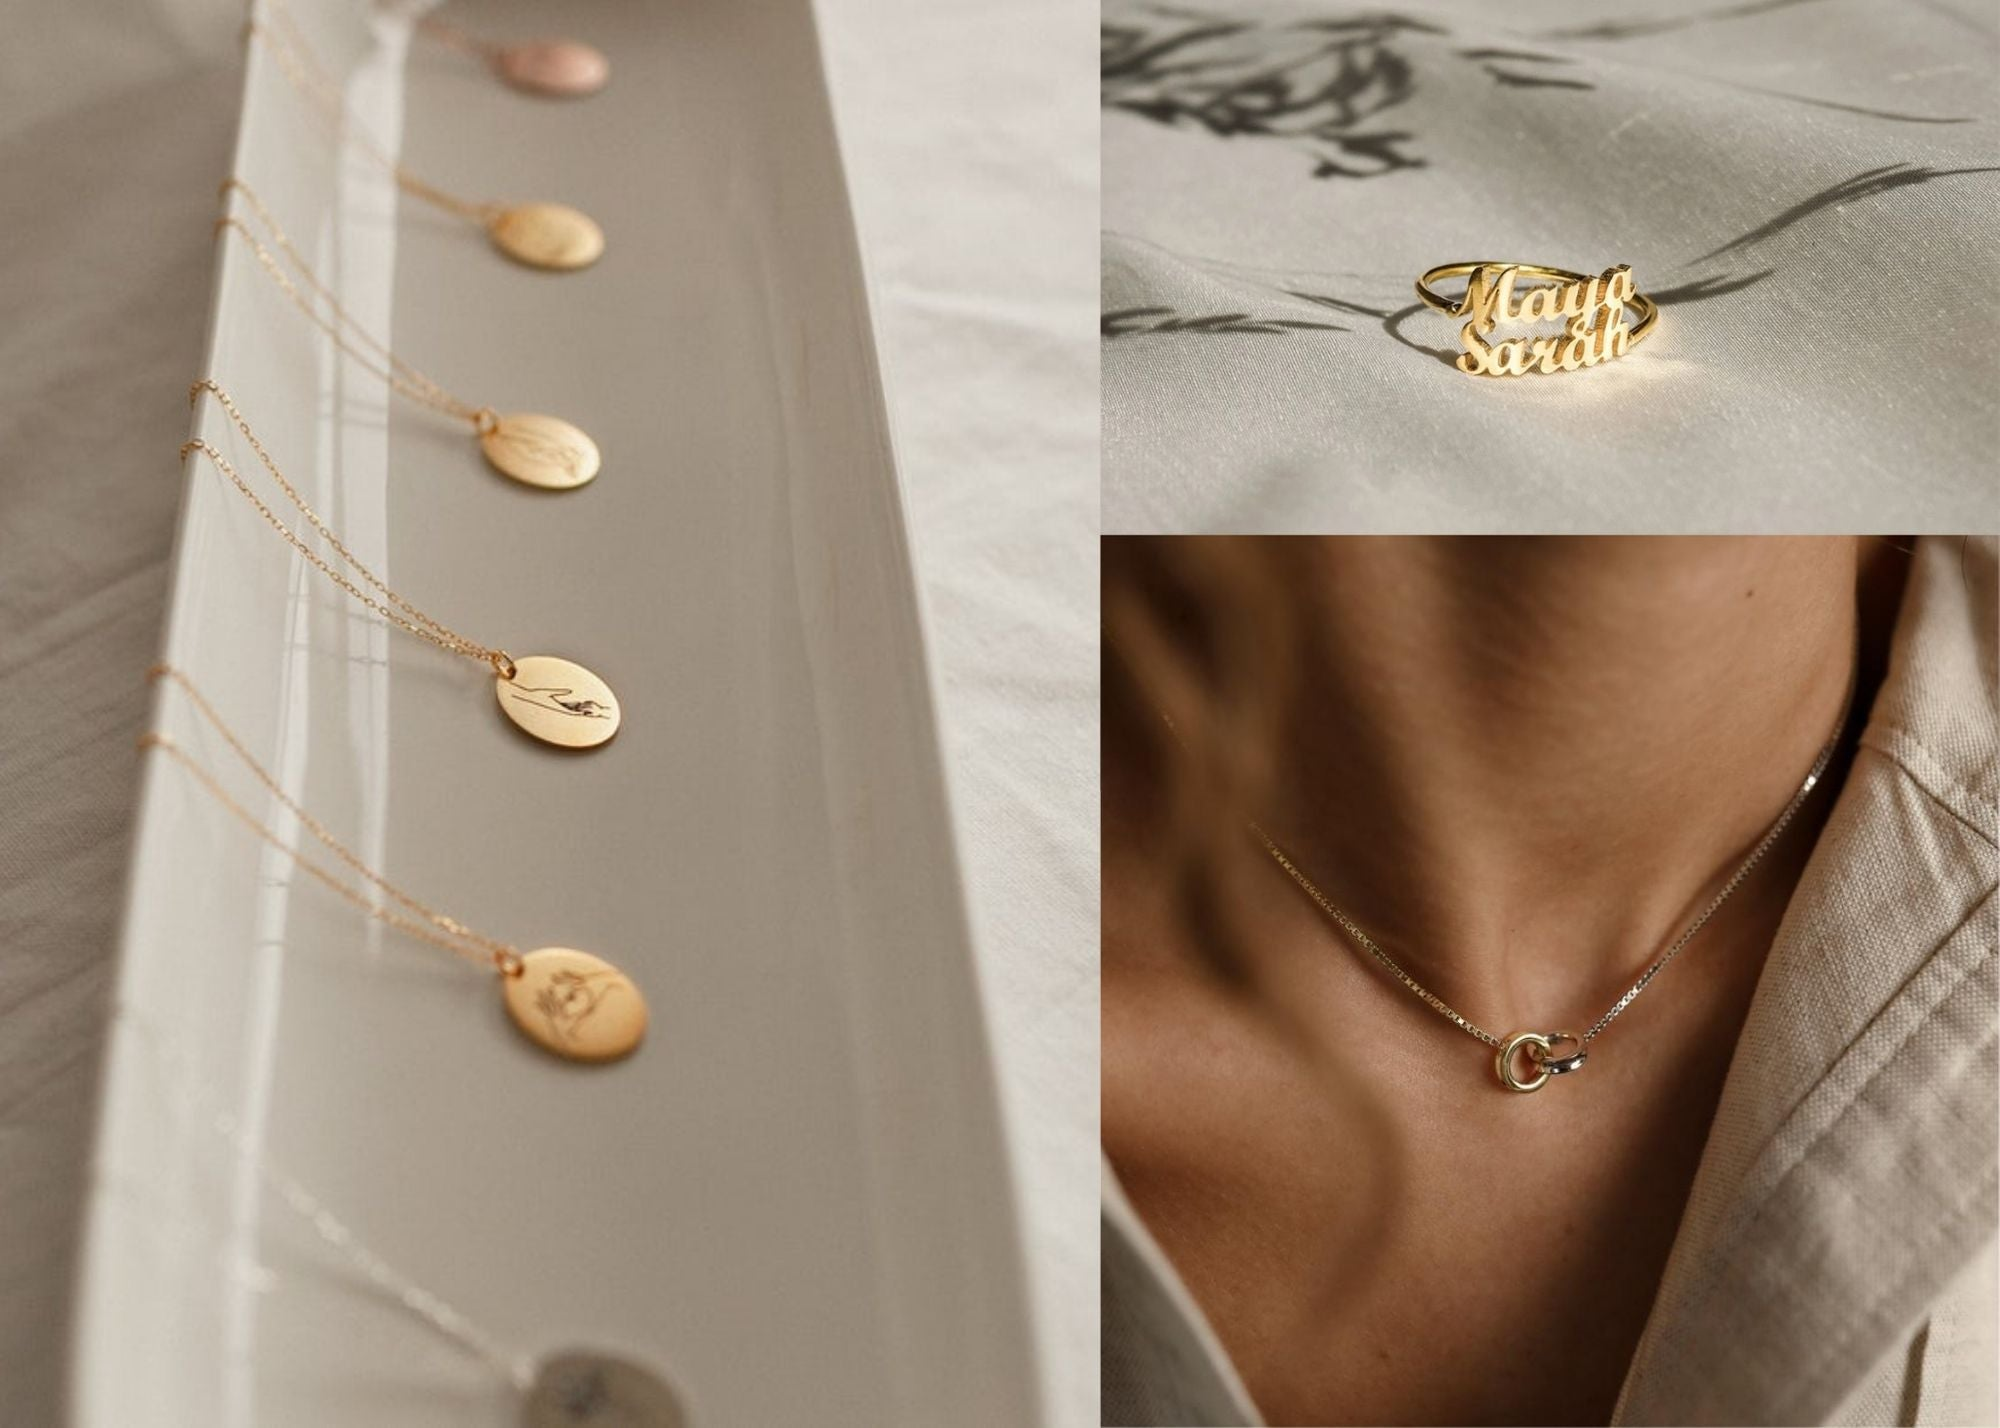 modern jewelry, contemporary jewelry, modern necklaces, minimalist jewelry, jewelry trends 2021, sleek jewelry, sleek necklaces, polished jewelry, mother's day, mother's day gift, mother's day gift guide, gifts for her, gifts for new moms, delicate jewelry, mother's day jewelry, everyday jewelry essentials, gifts for mom, gifts for grandmother